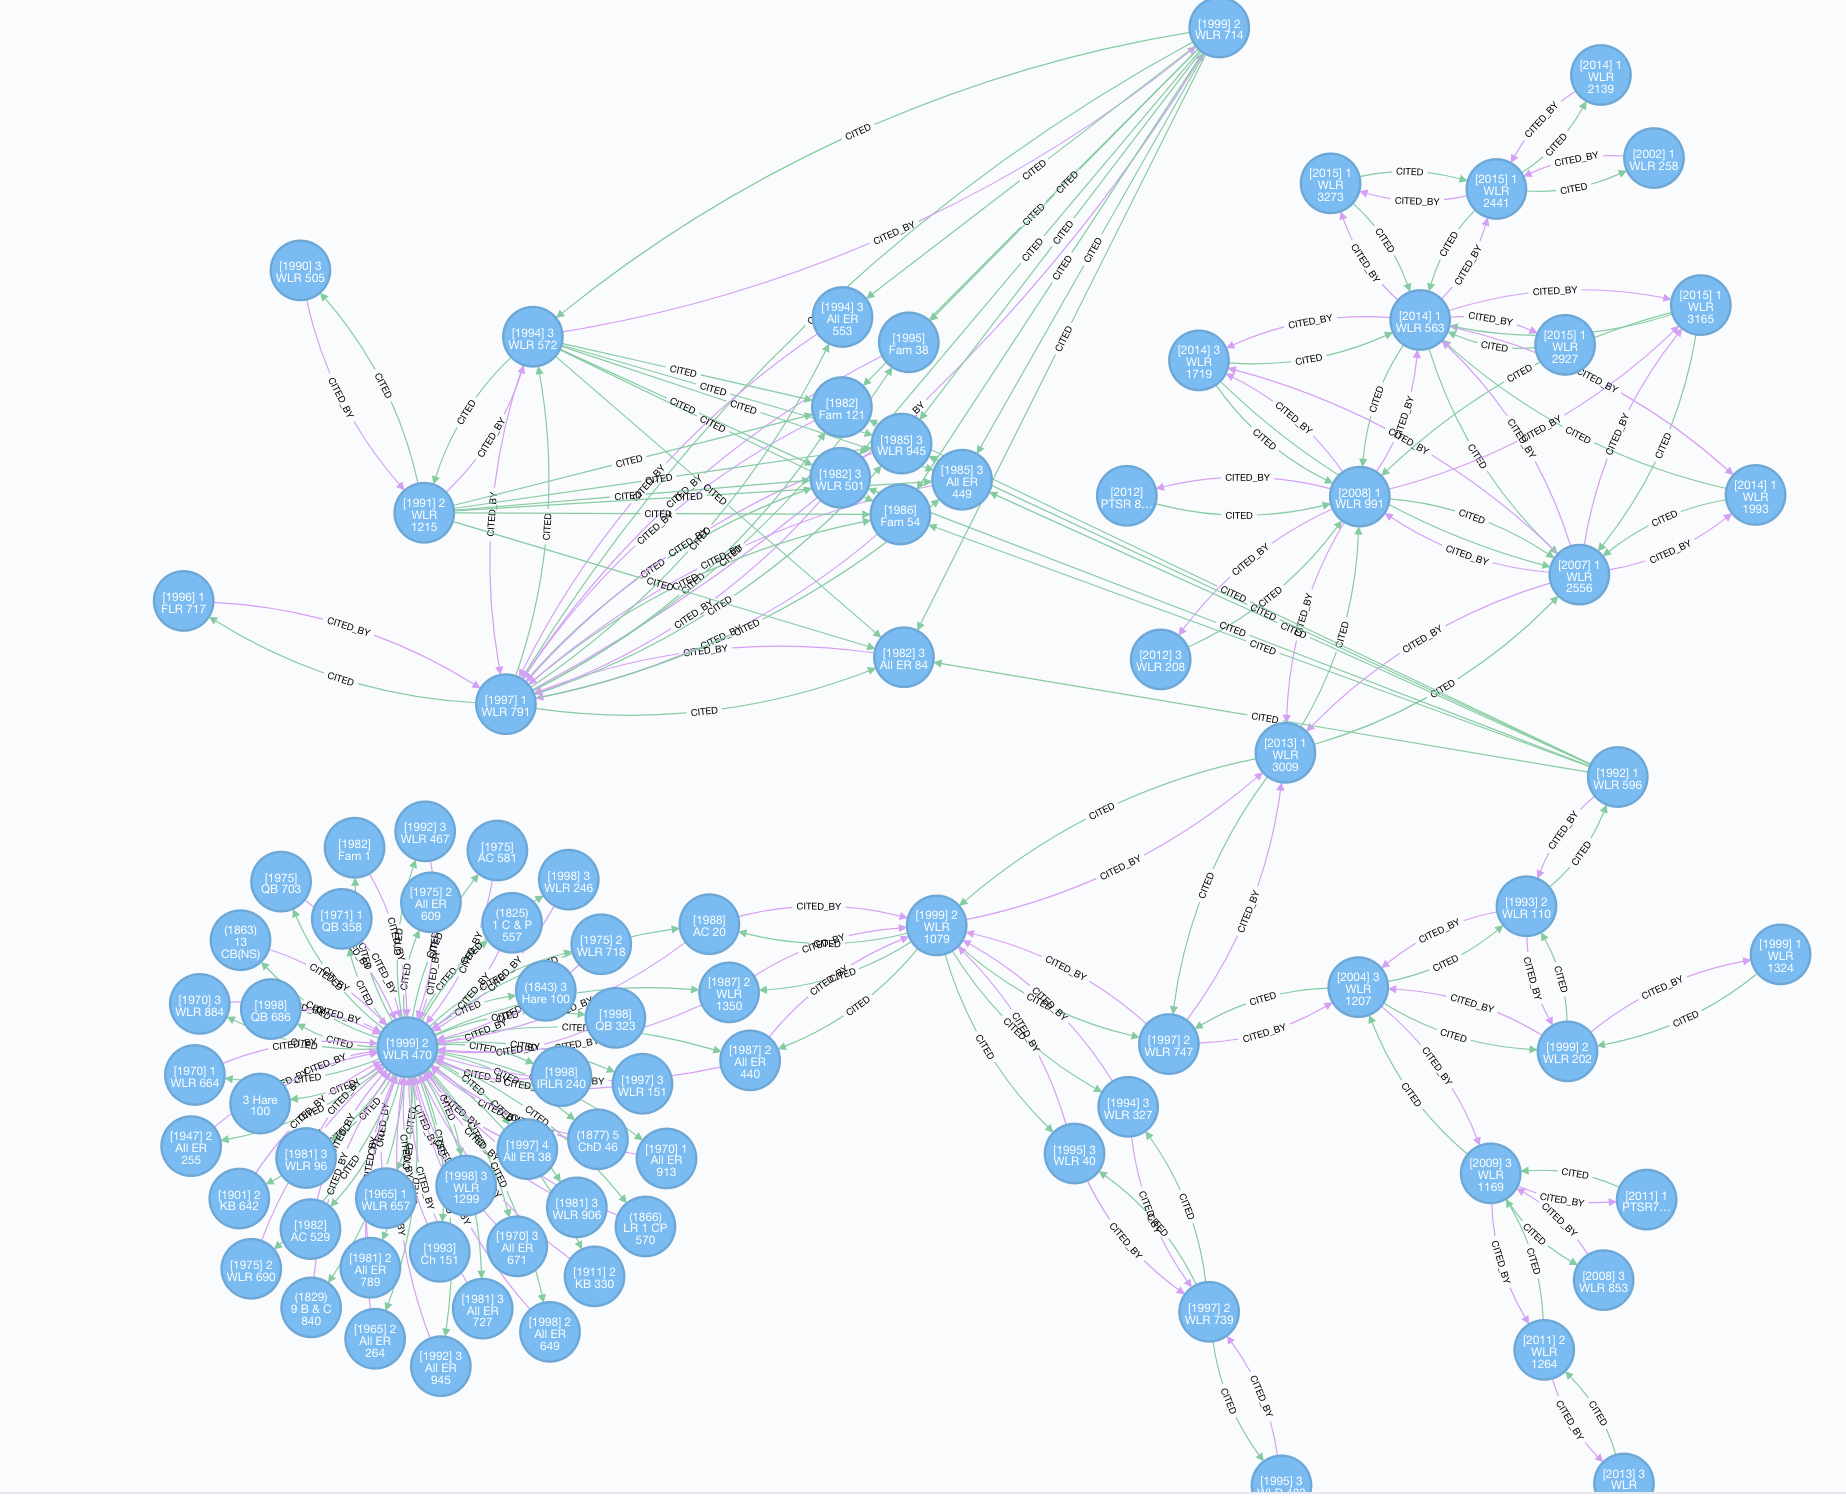 View of the a small portion of the graph from the Neo4j browser